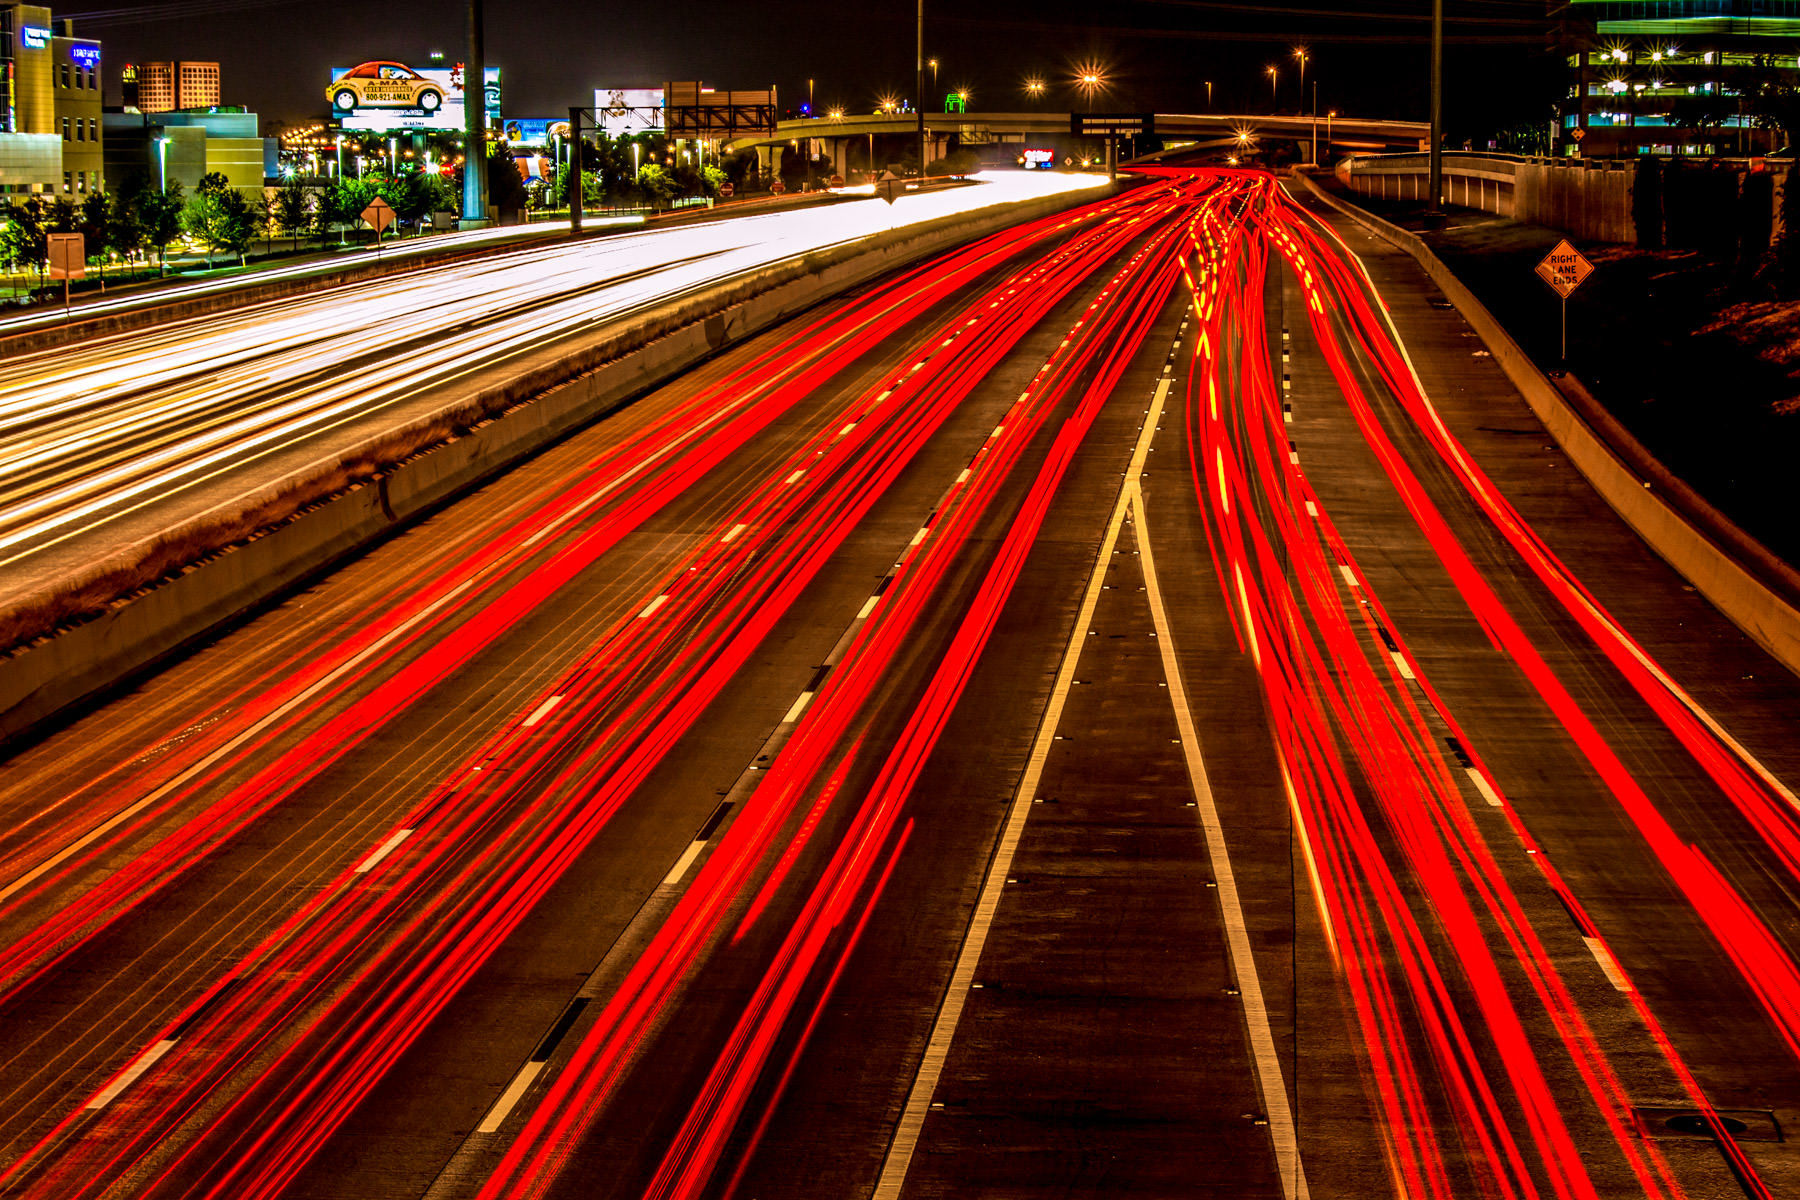 Cars exiting from Dallas' eastbound I-635 merge with the southbound lanes of US 75 in this long exposure shot taken from a bridge over the roadway.